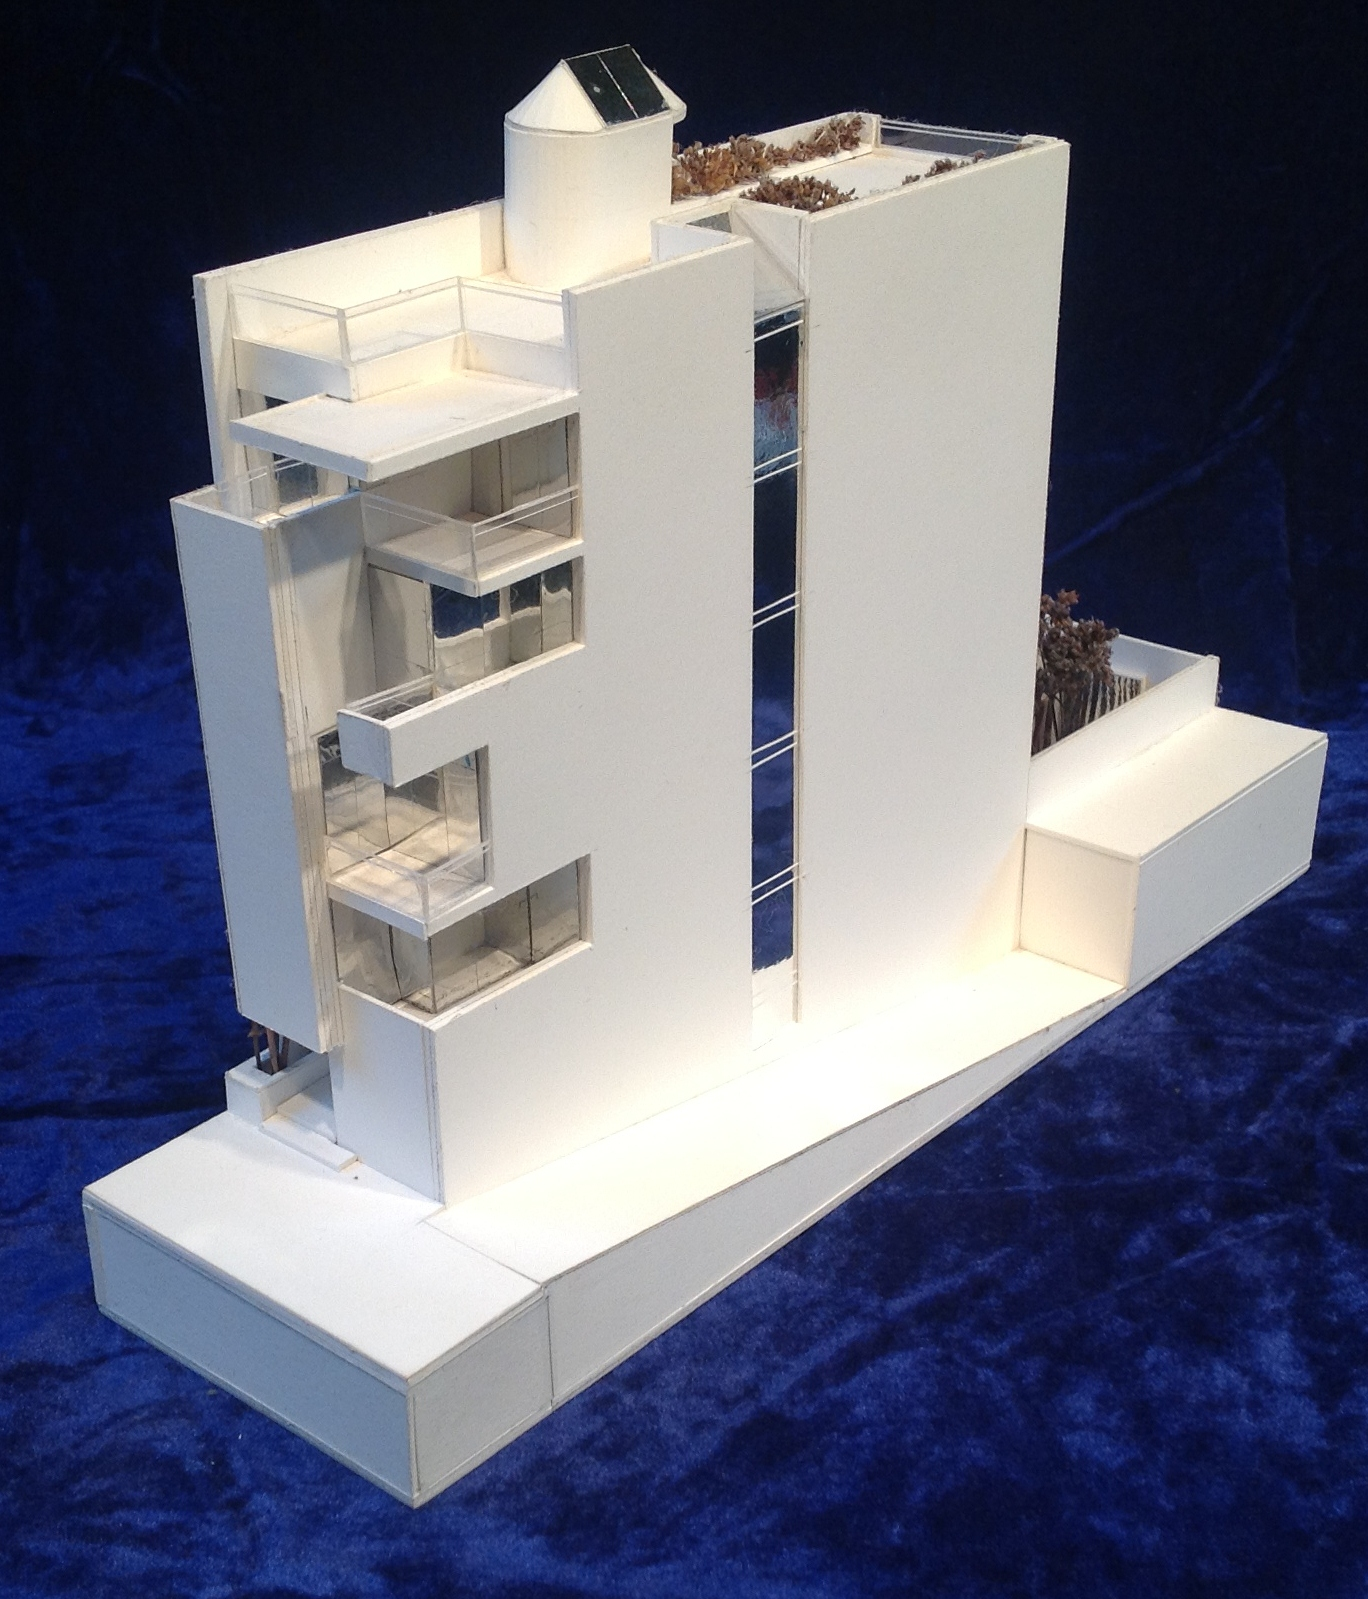 Architectural Model By Gary Lawrance, AIA Lawrance Architectural  Presentations Of A New York City Townhouse Designed By Preston T. Phillips  Architect, ...